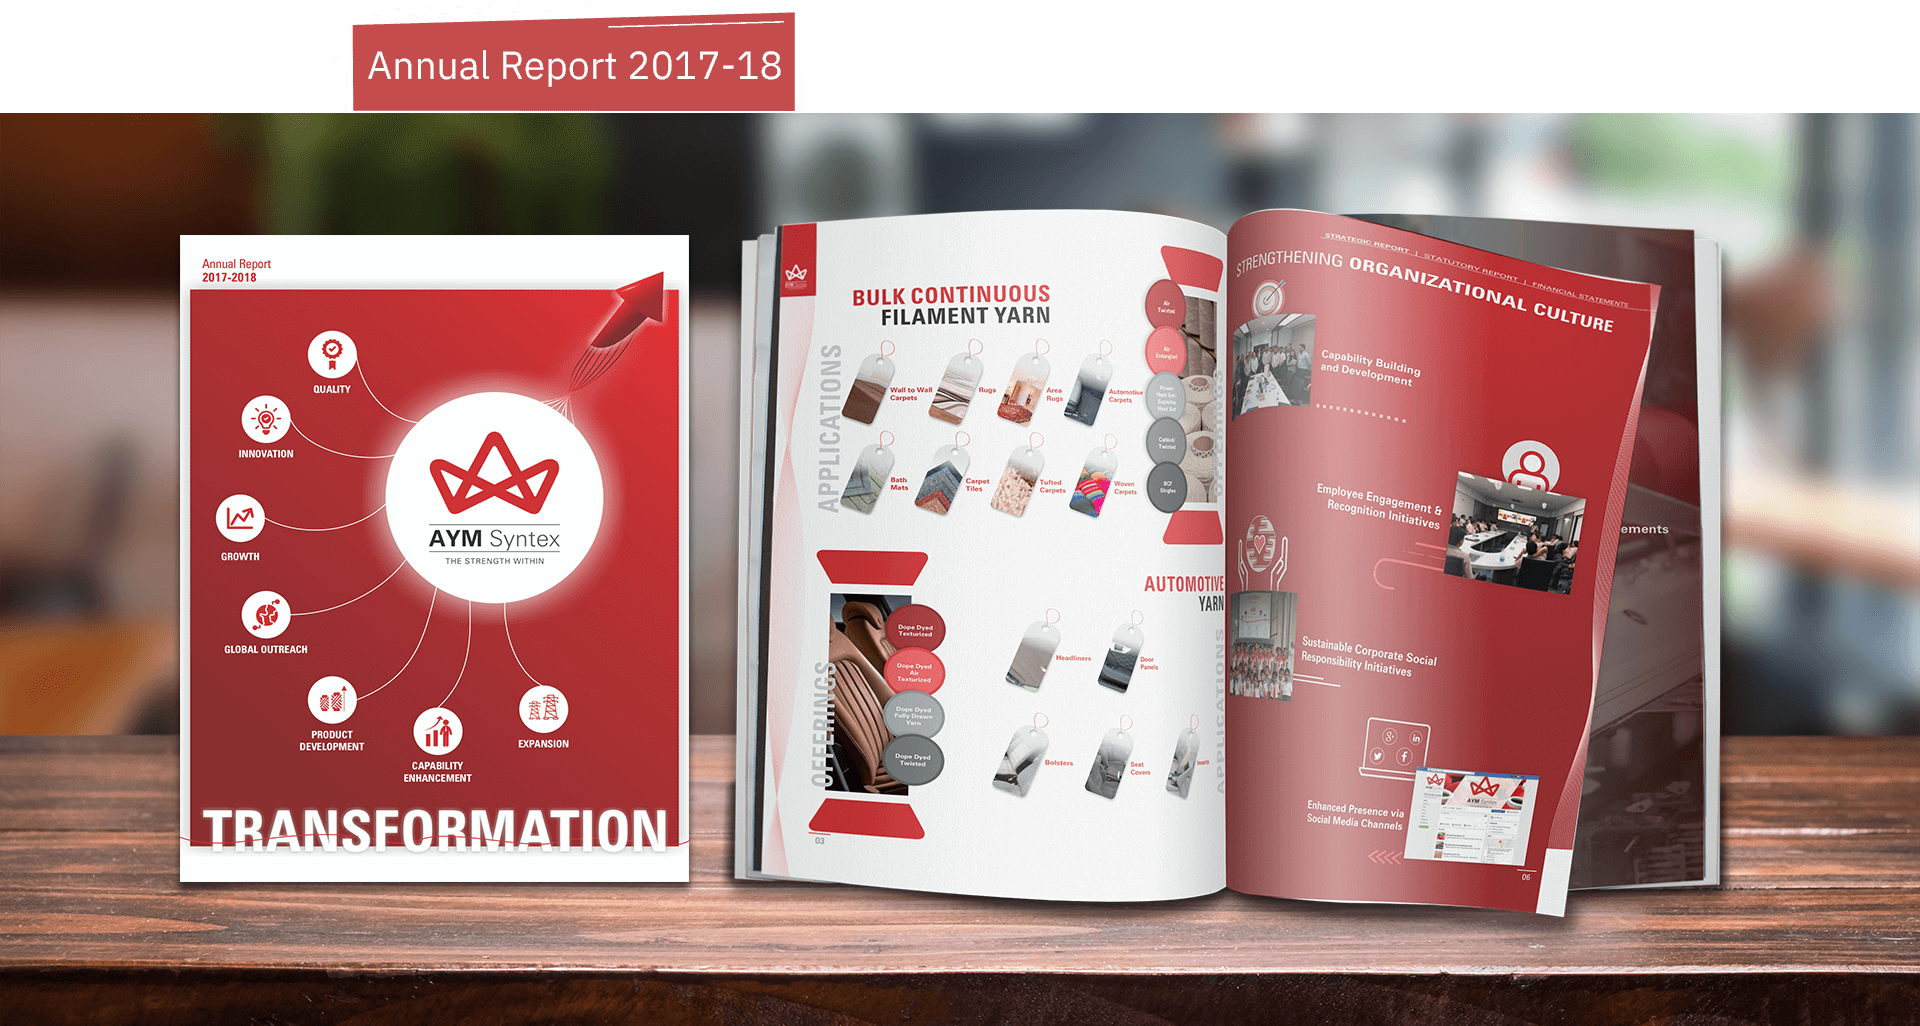 AYM Syntex Annual Report 2017-18